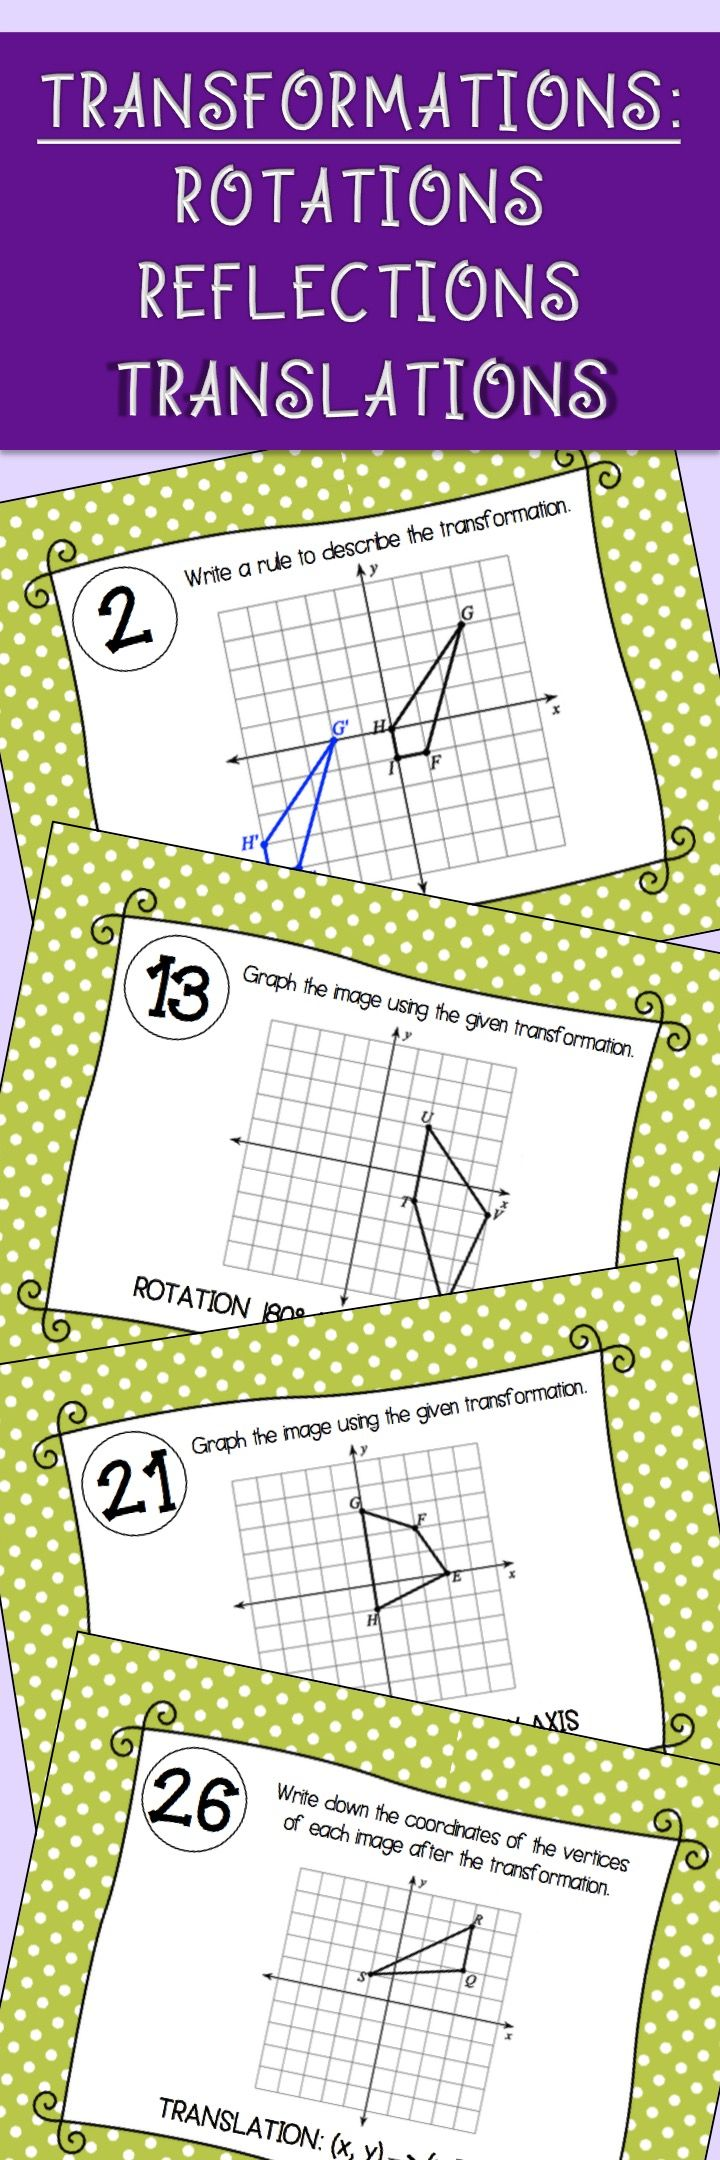 Transformation task cards activity. Reflections, Rotations, and Translations for high school or middle school geometry.